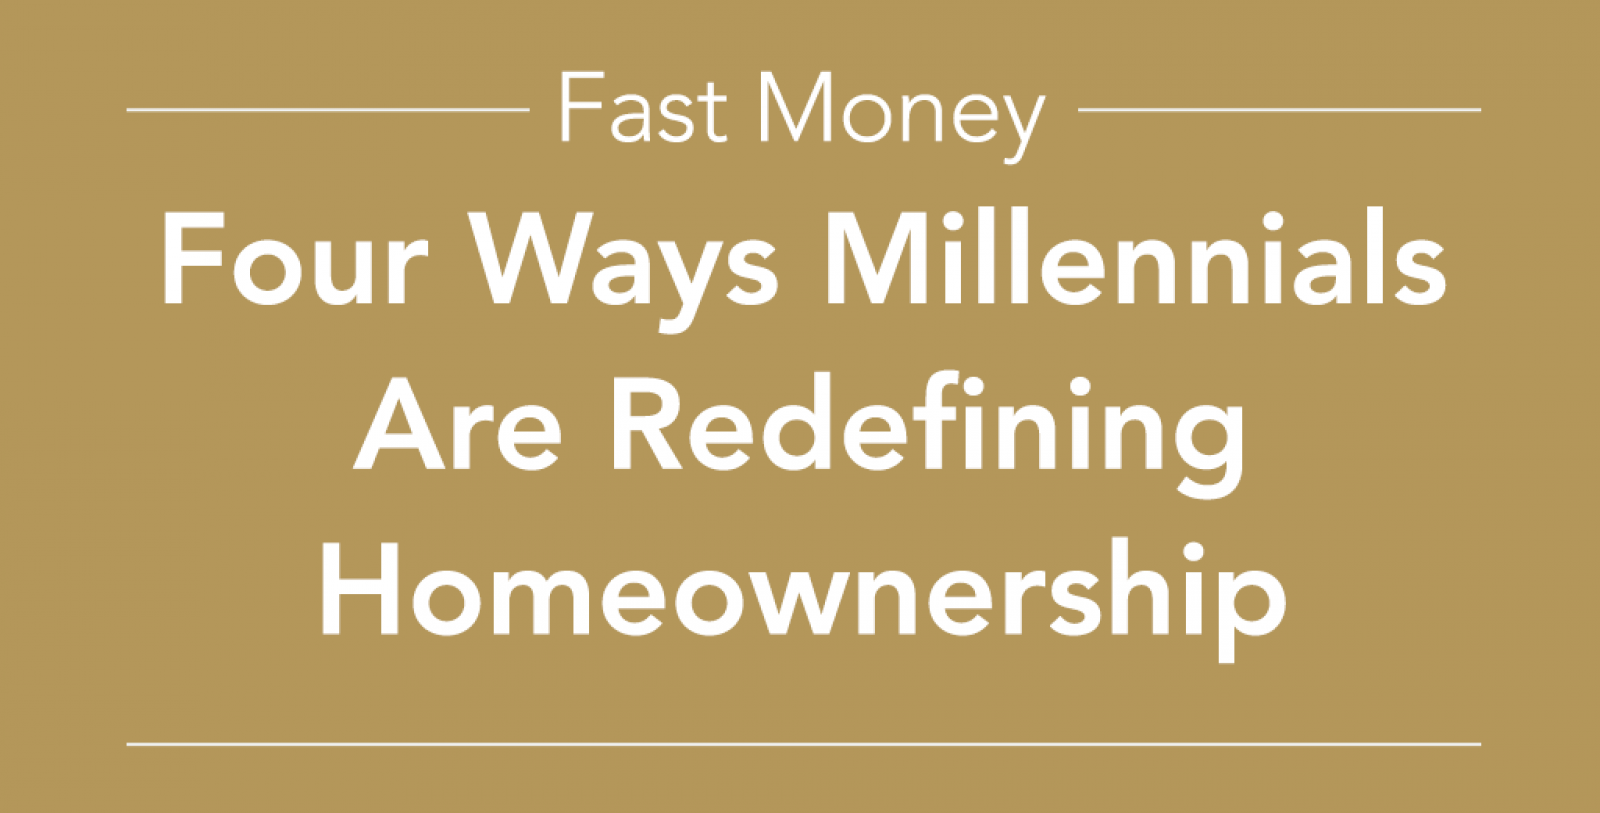 Four ways millennials are redefining homeownership